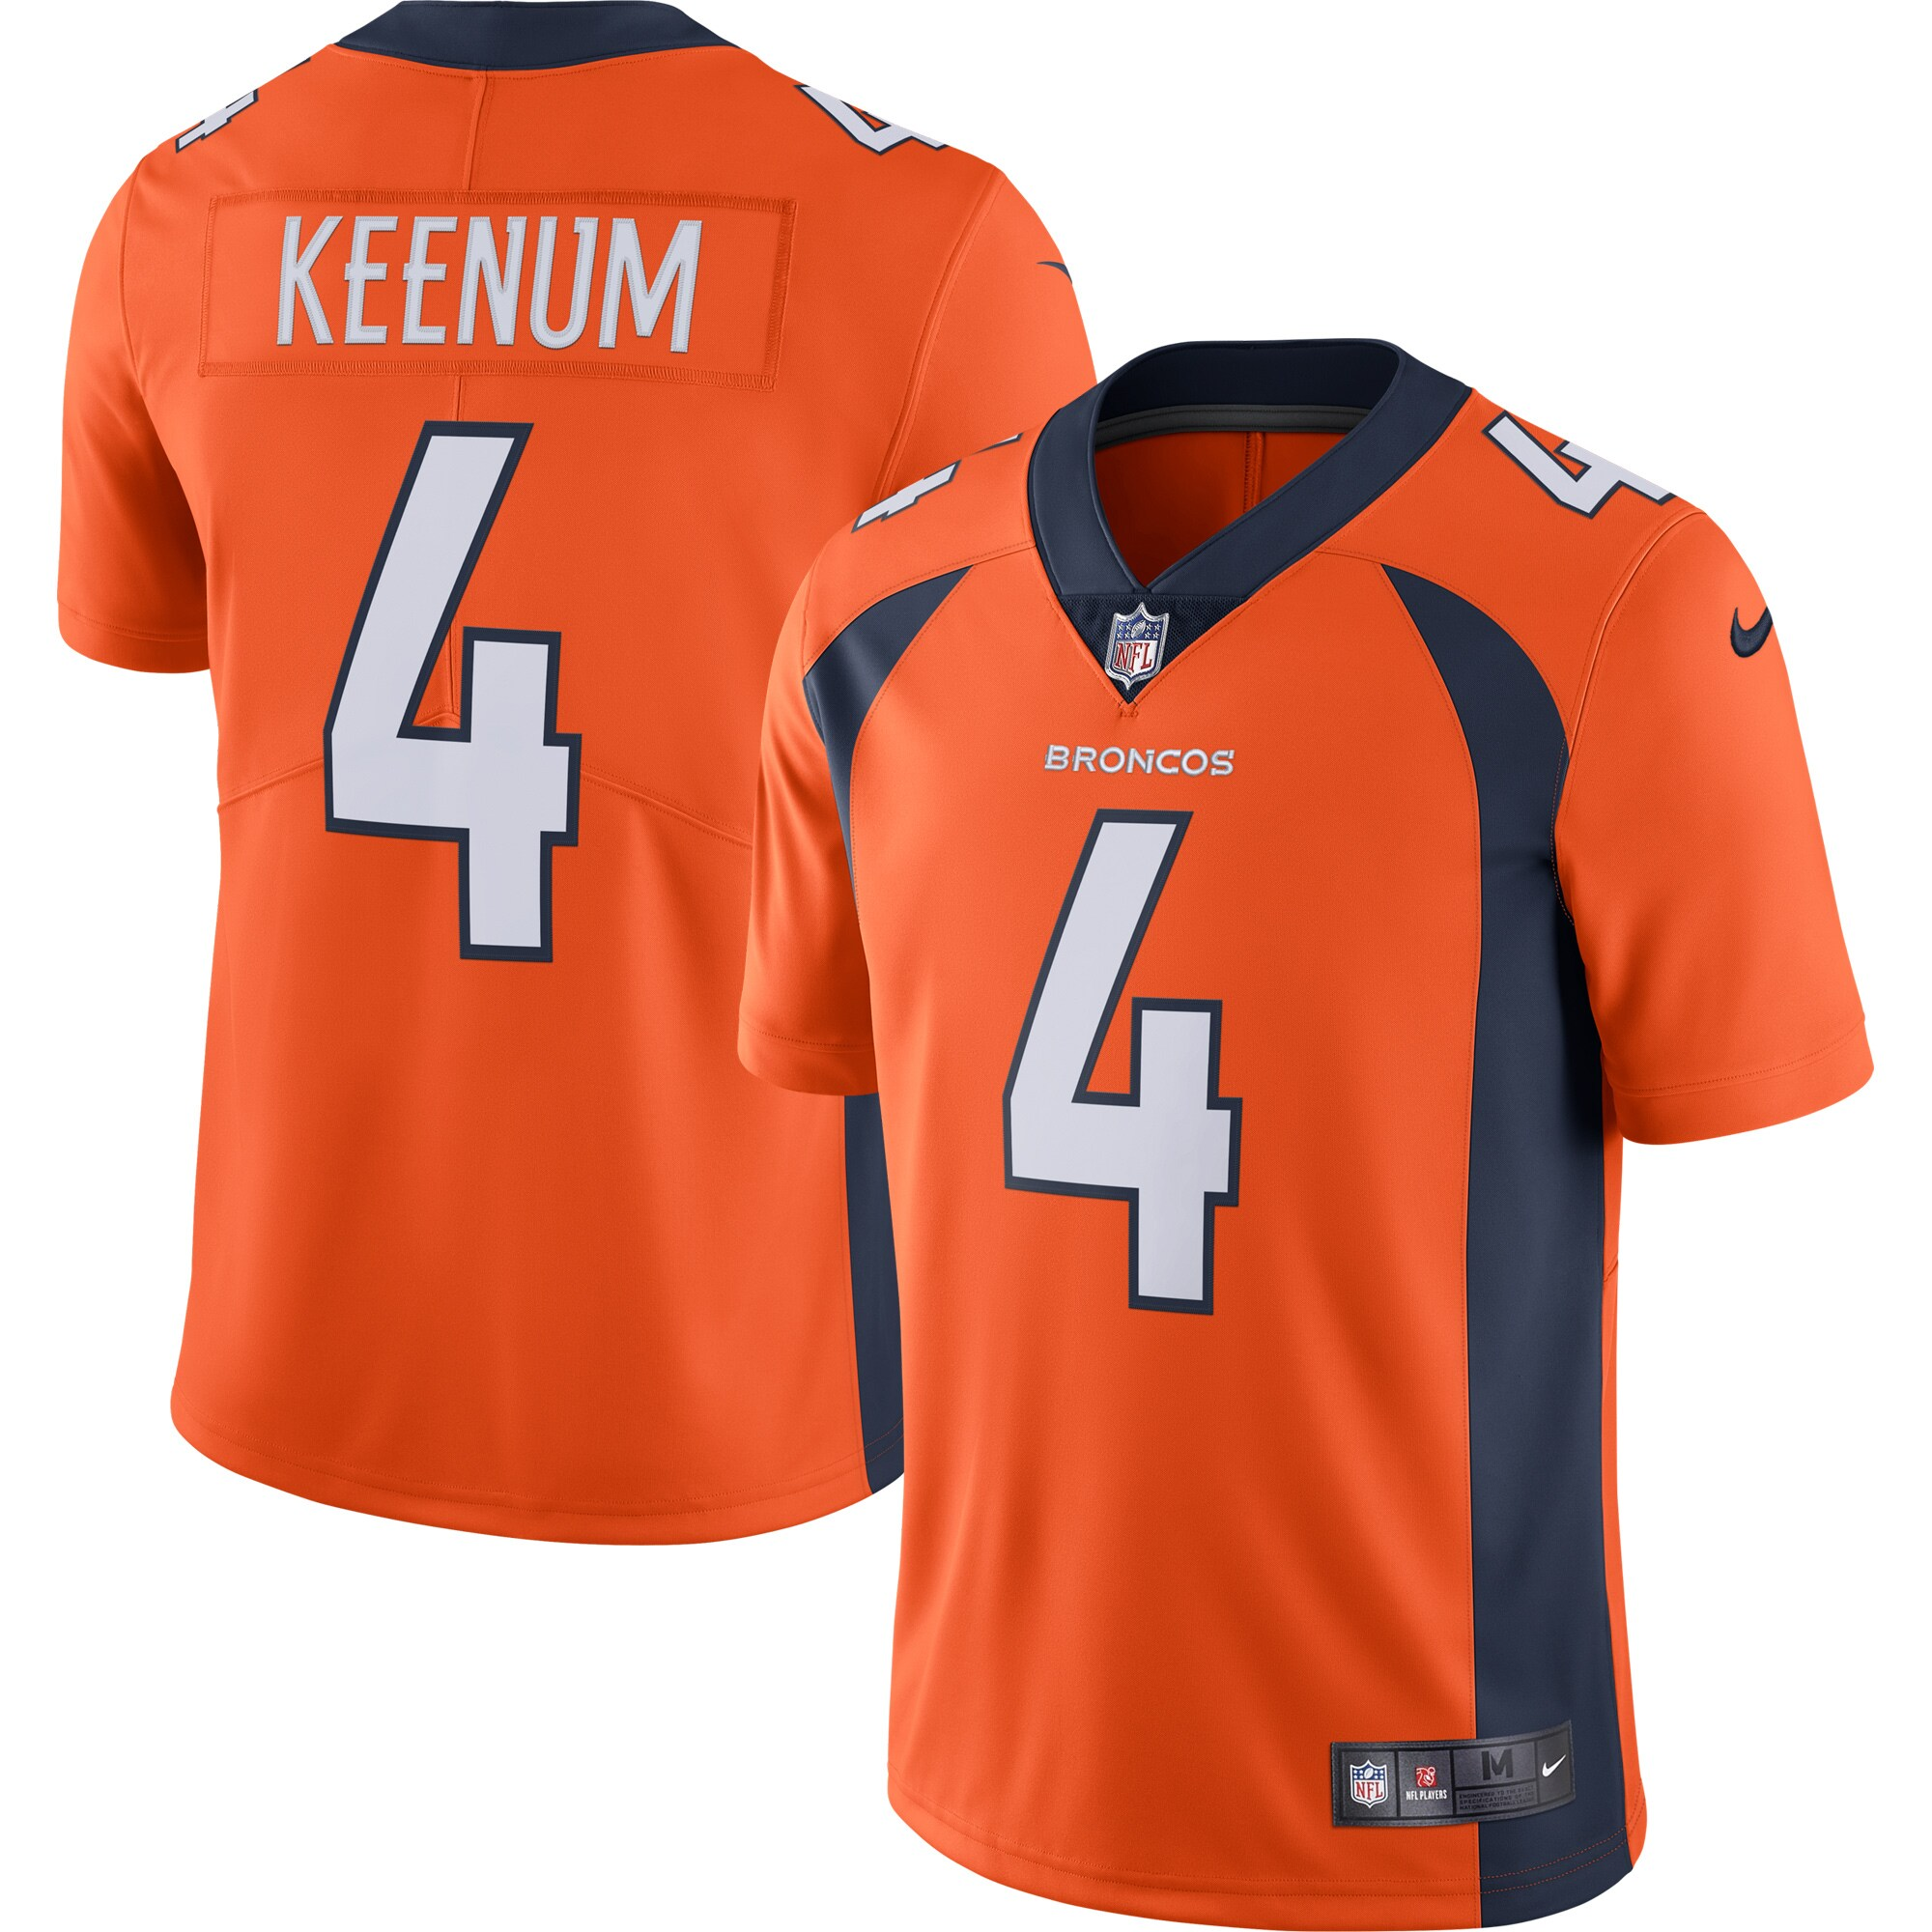 Case Keenum Denver Broncos Nike Vapor Untouchable Limited Jersey - Orange